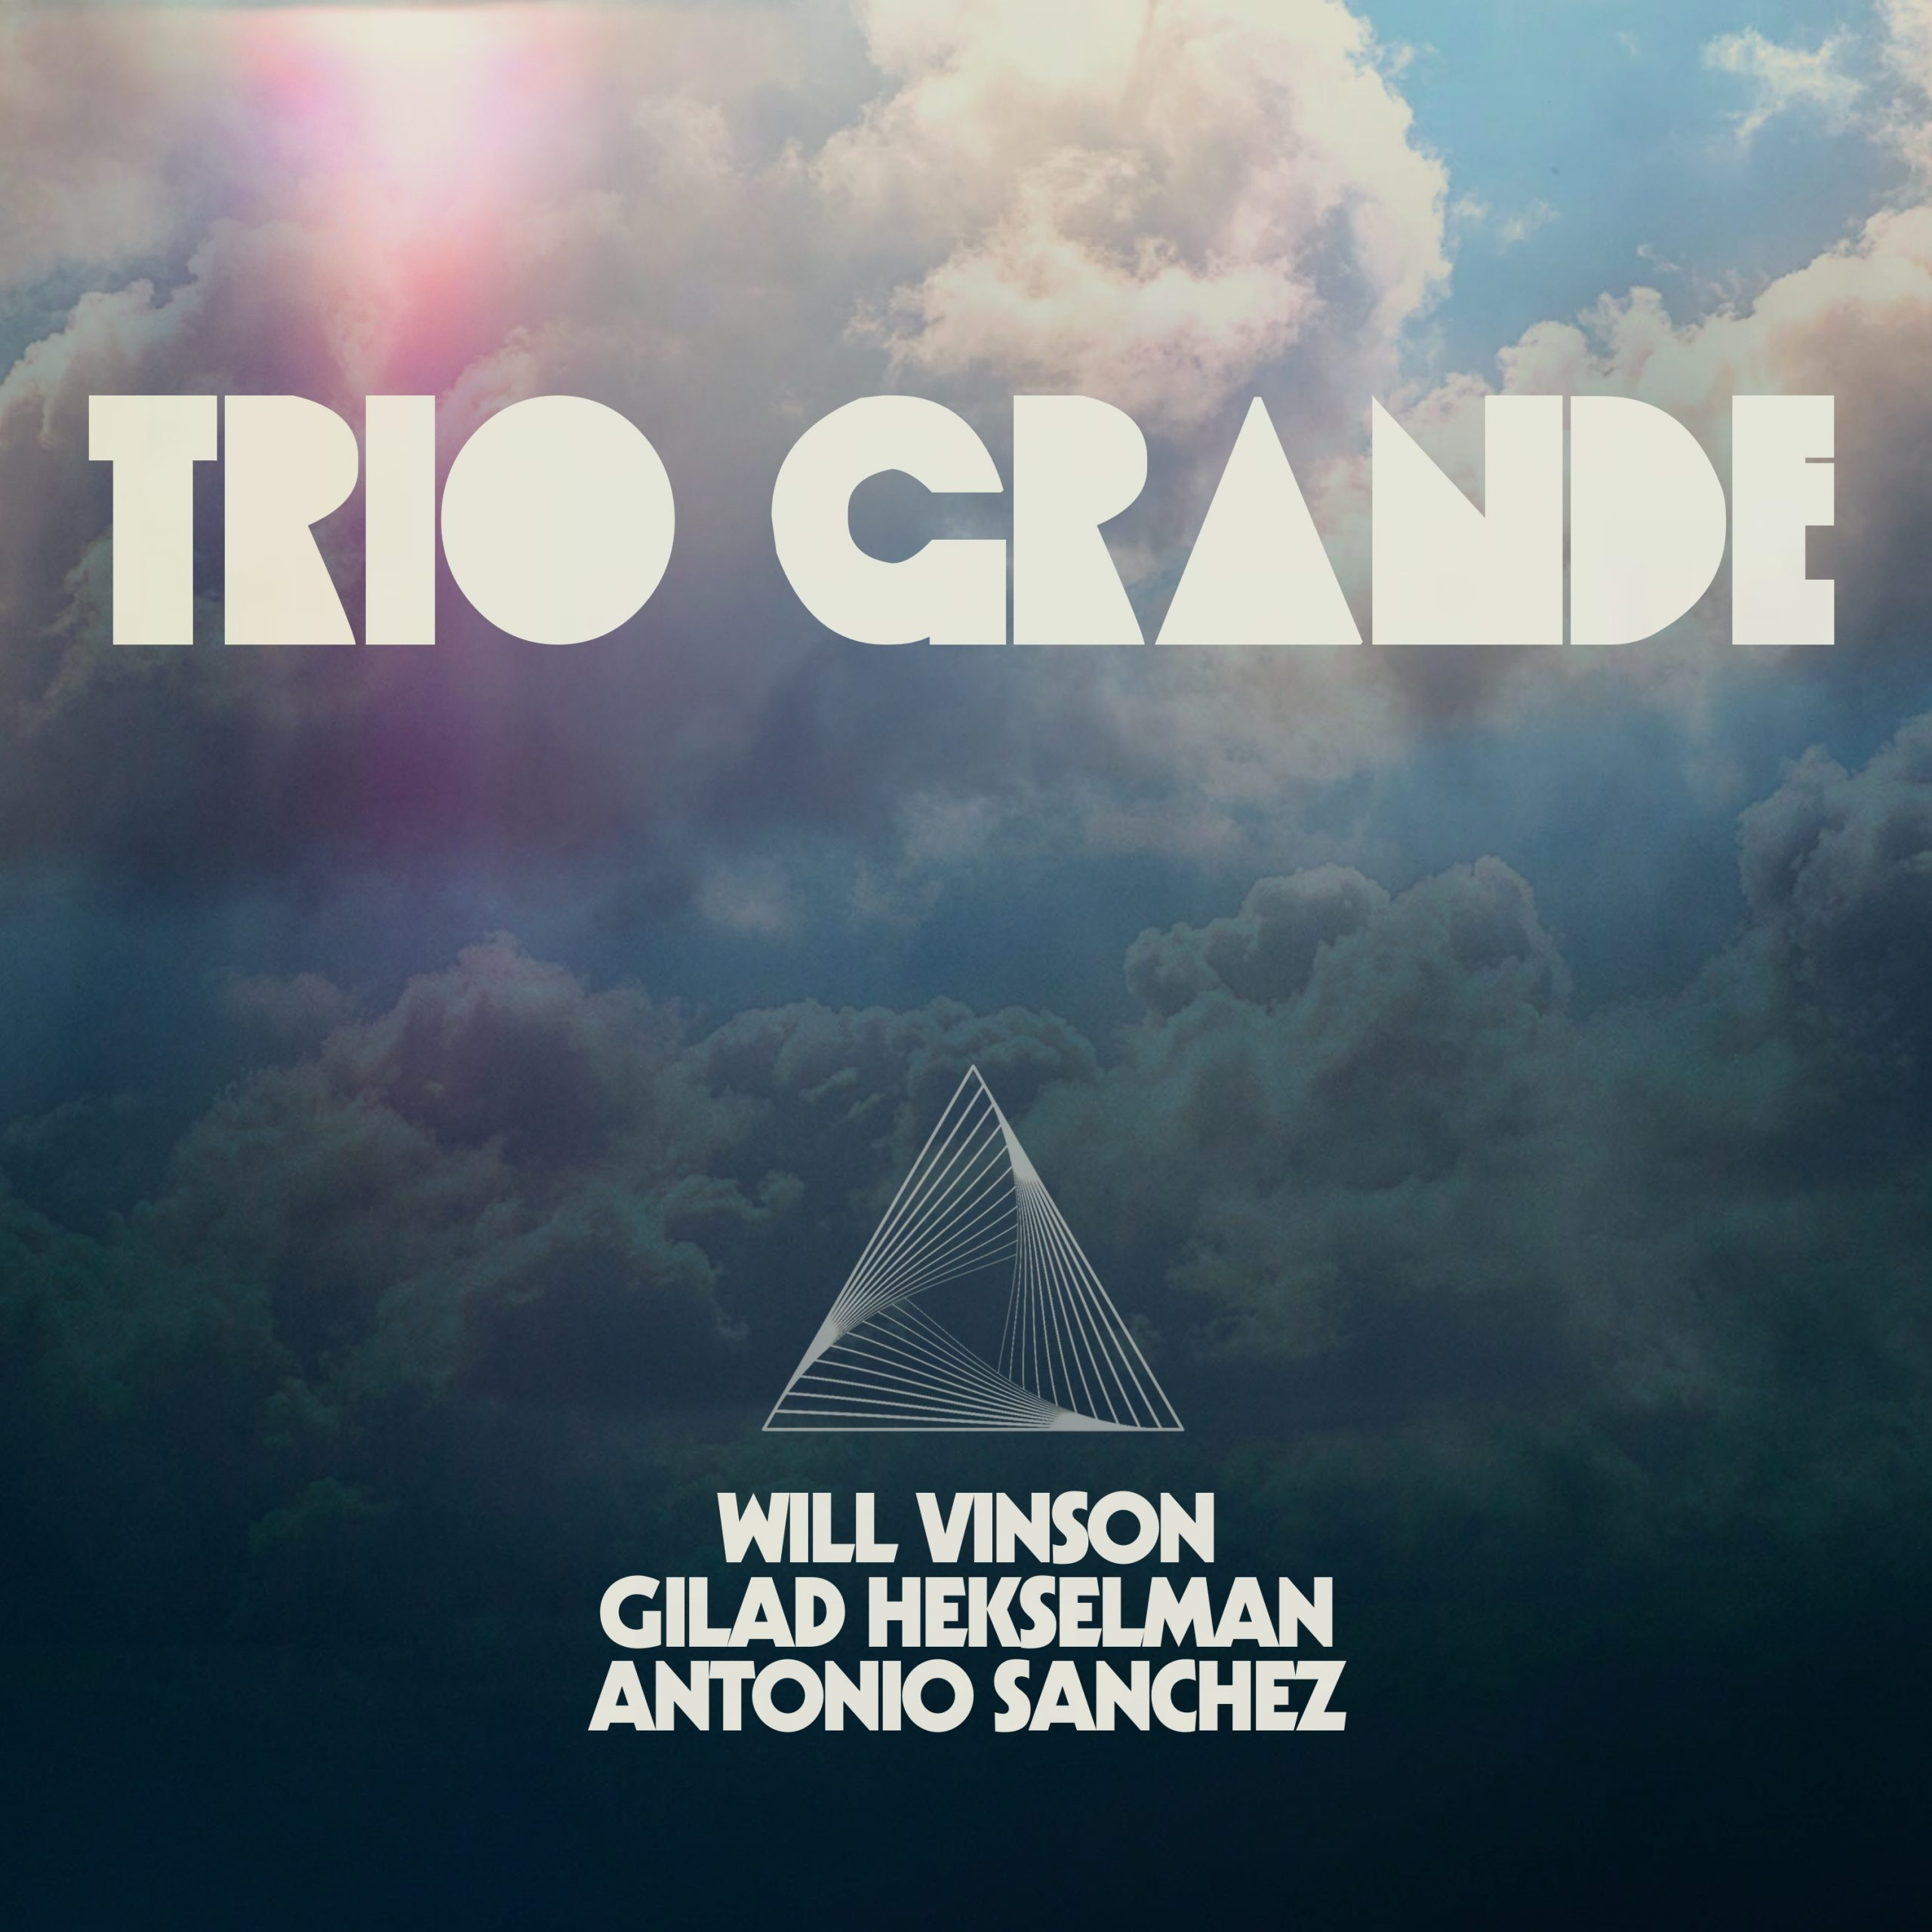 NEW RELEASE: Trio Grande, featuring Will Vinson, Gilad Hekselman & Antonio Sanchez, is out November 13th via Whirlwind Recordings